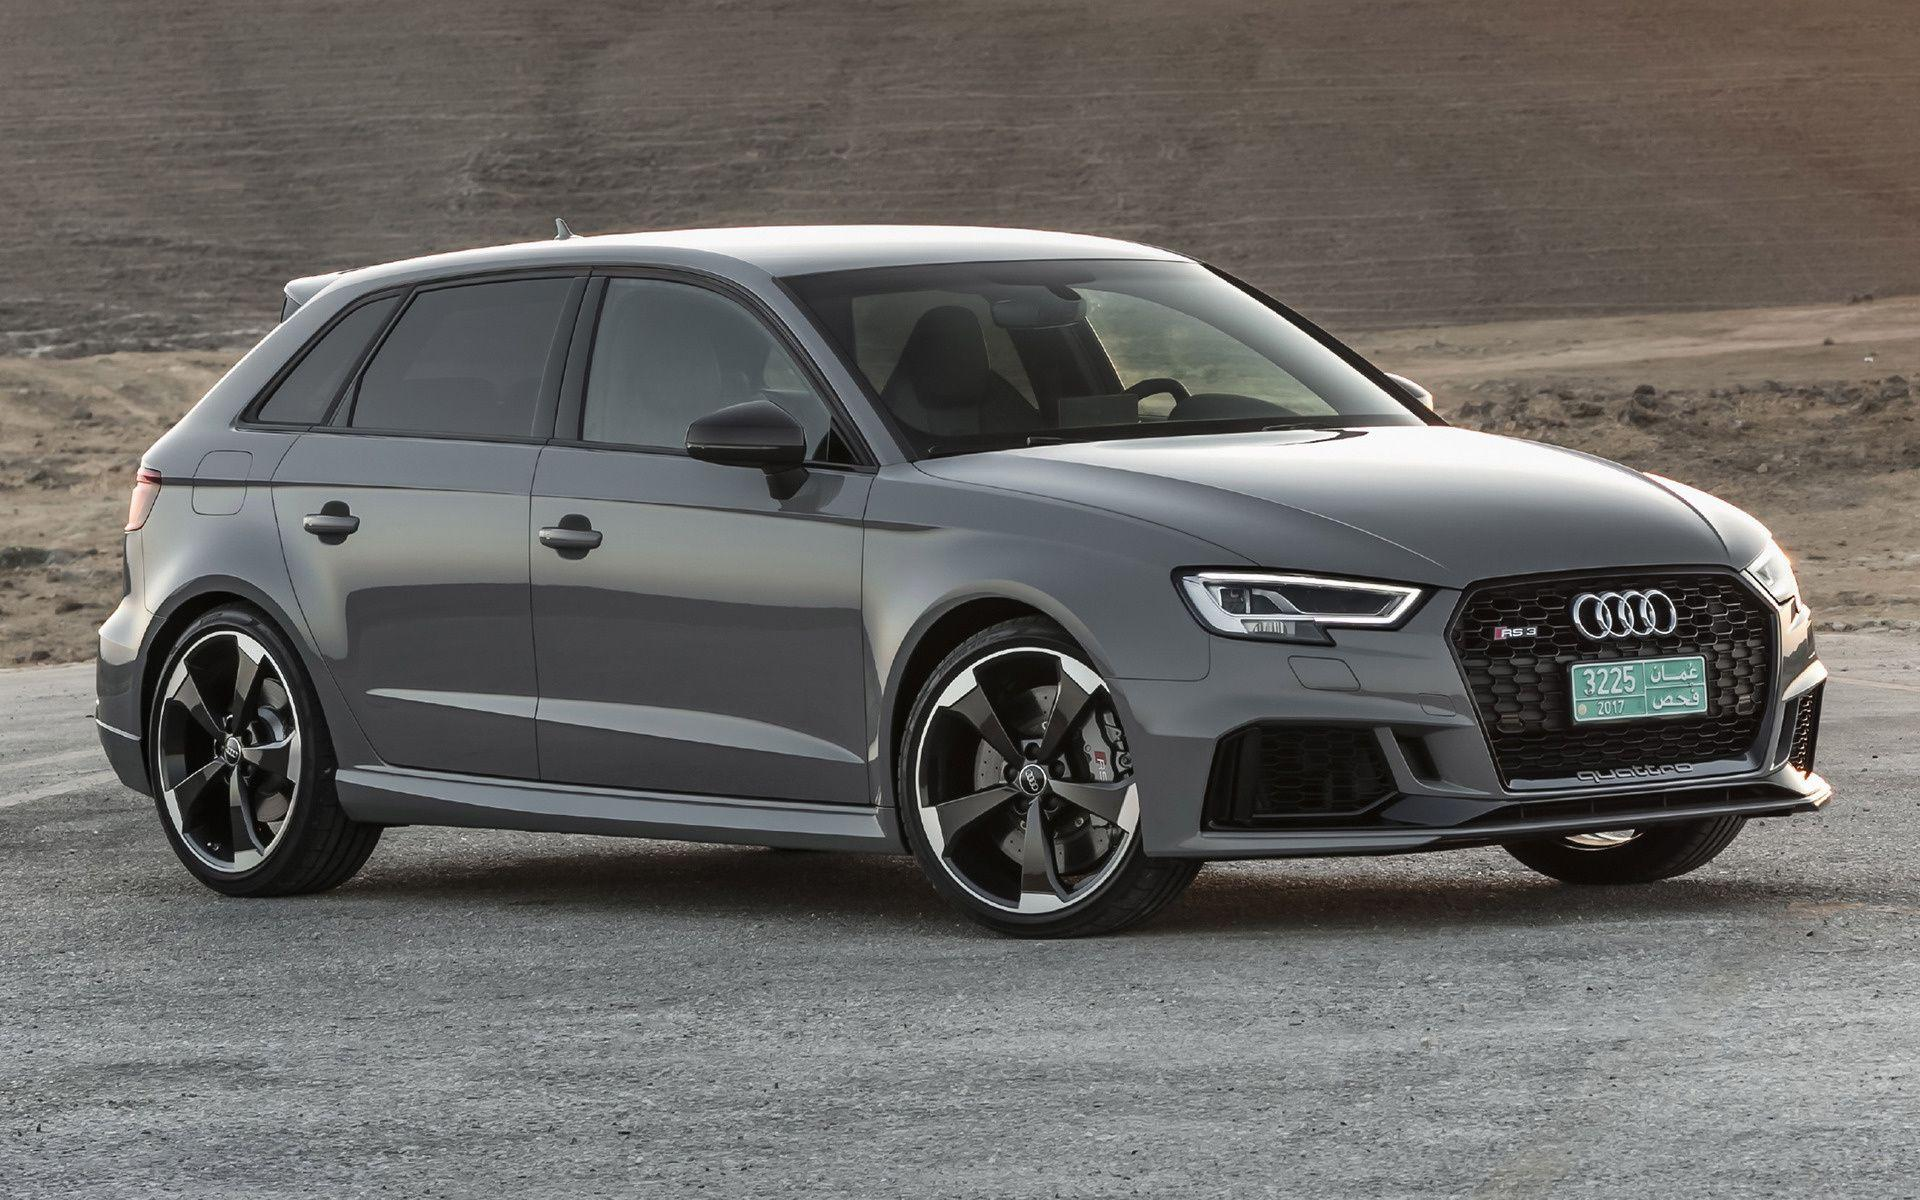 Audi RS 3 Sportback (2017) Wallpapers and HD Images - Car Pixel